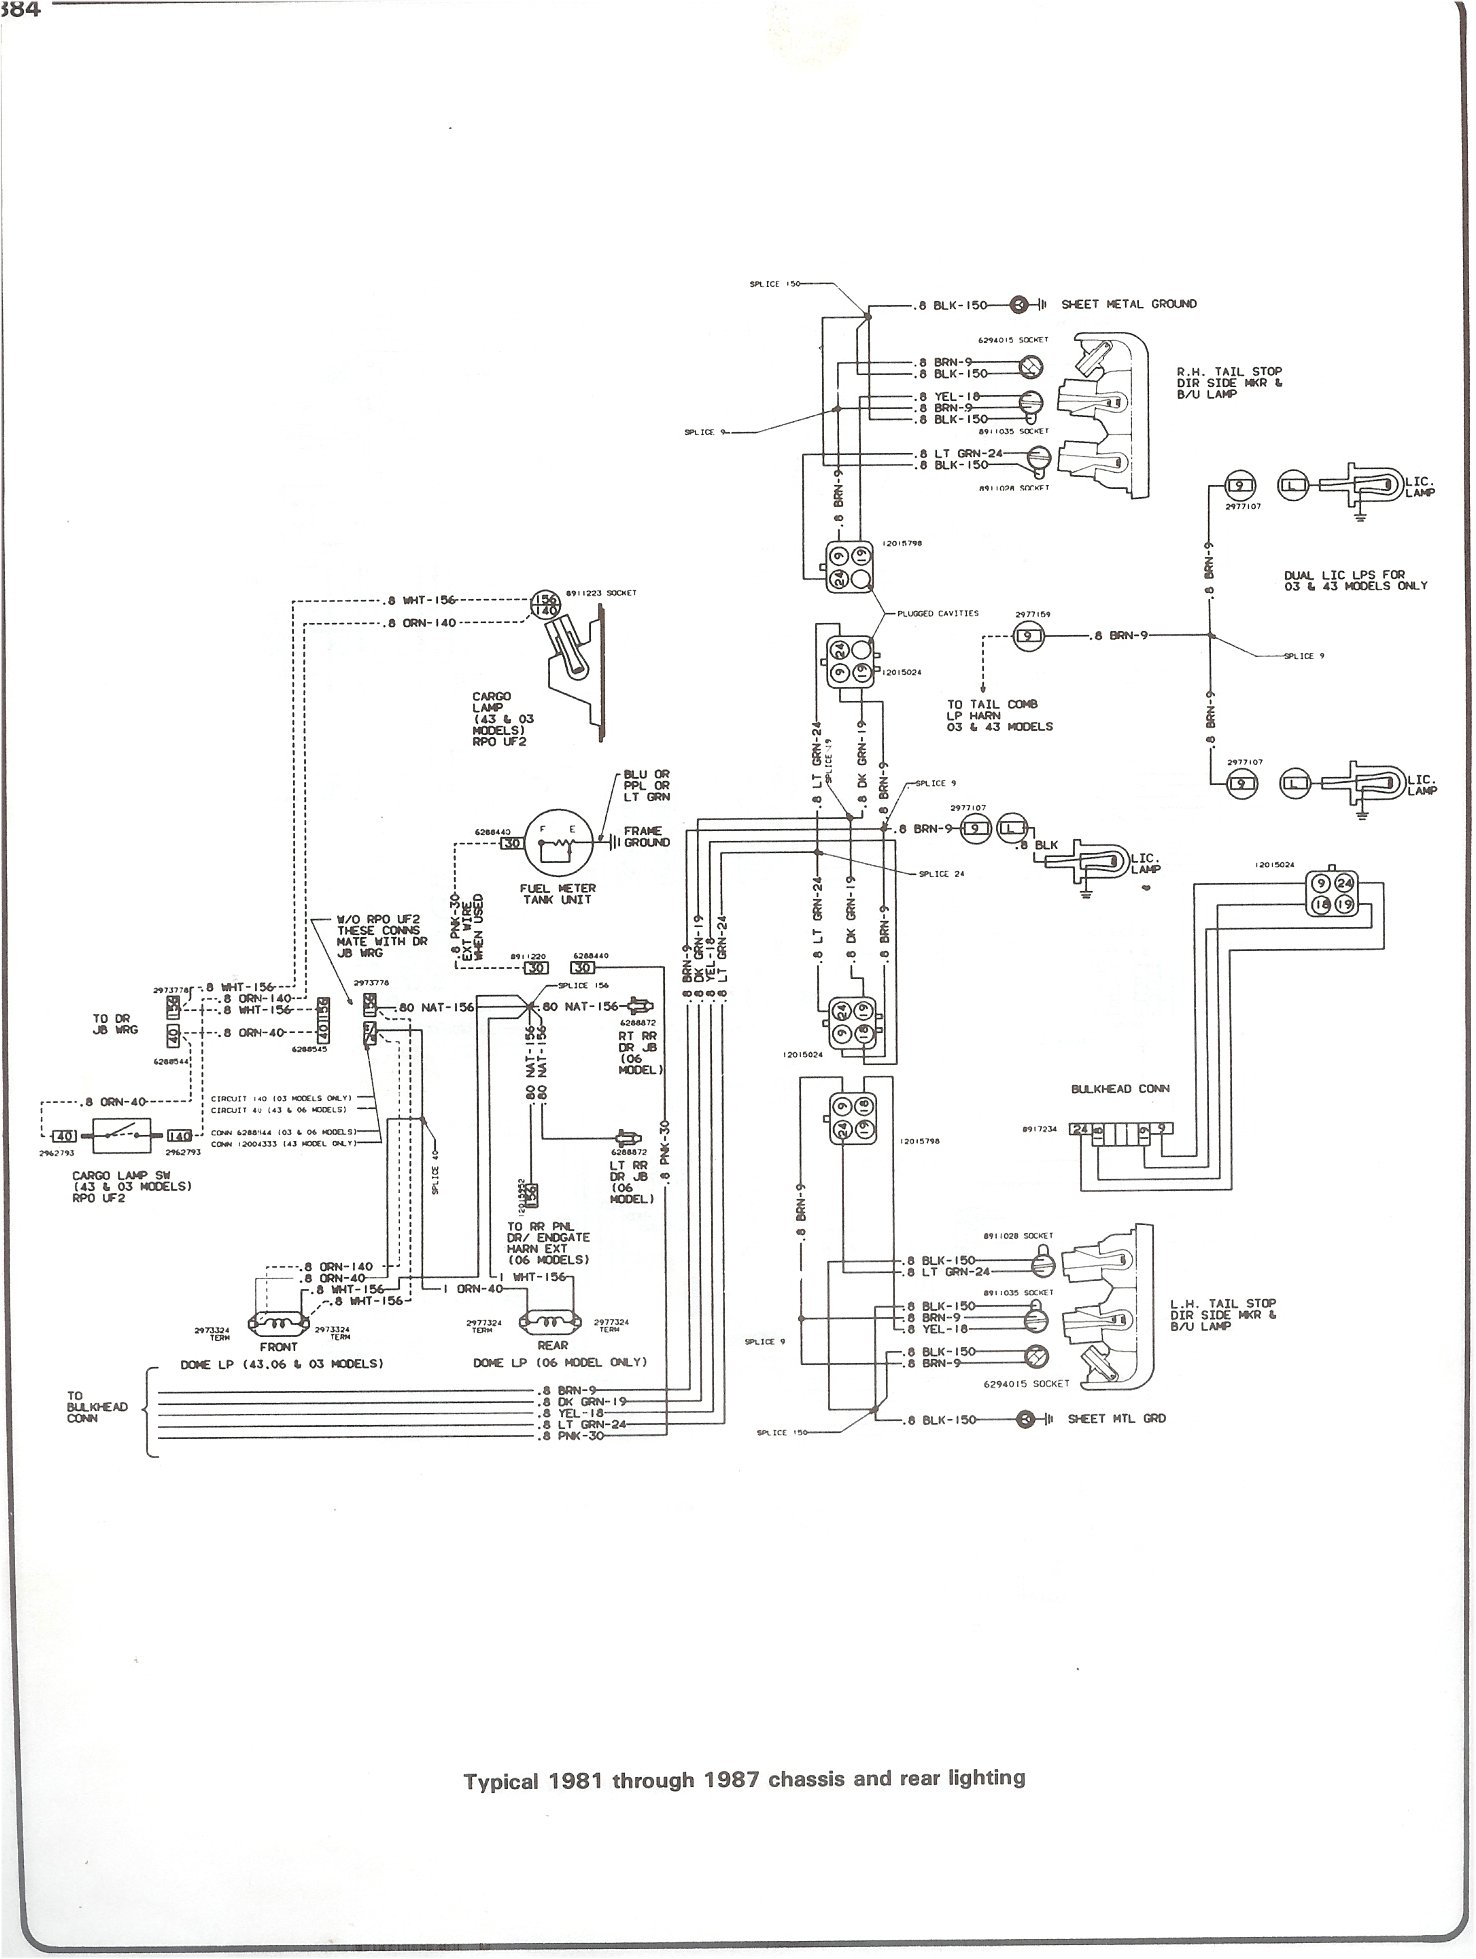 81 87_chass_rr_light complete 73 87 wiring diagrams 1997 Chevy Suburban at couponss.co